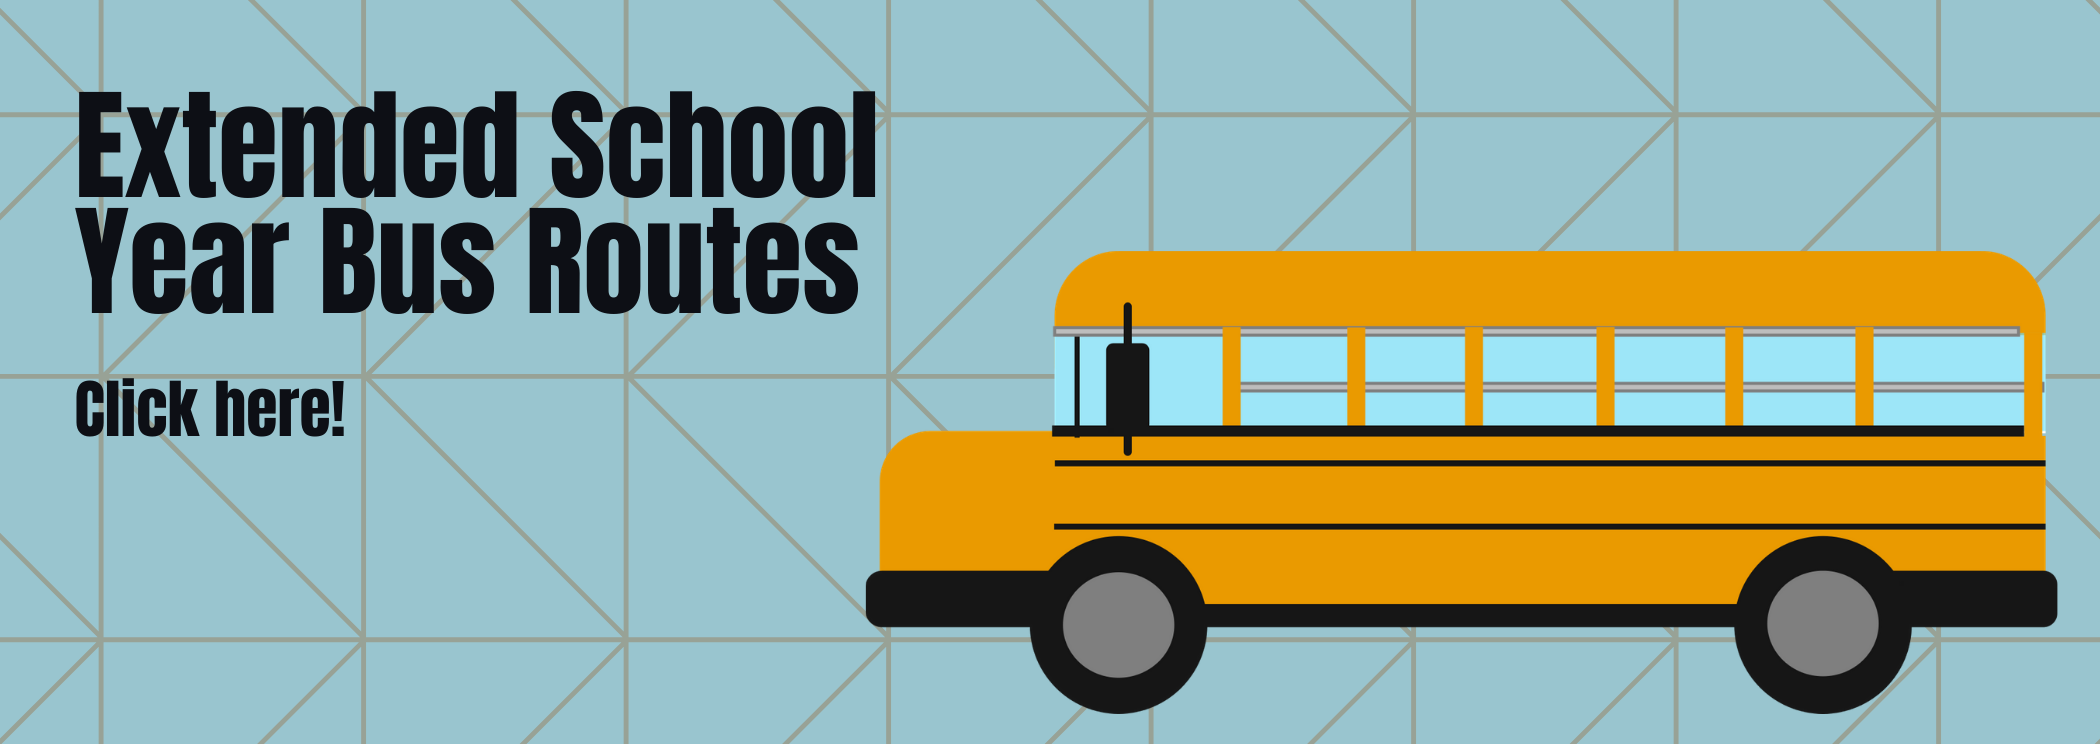 extended school year bus stops